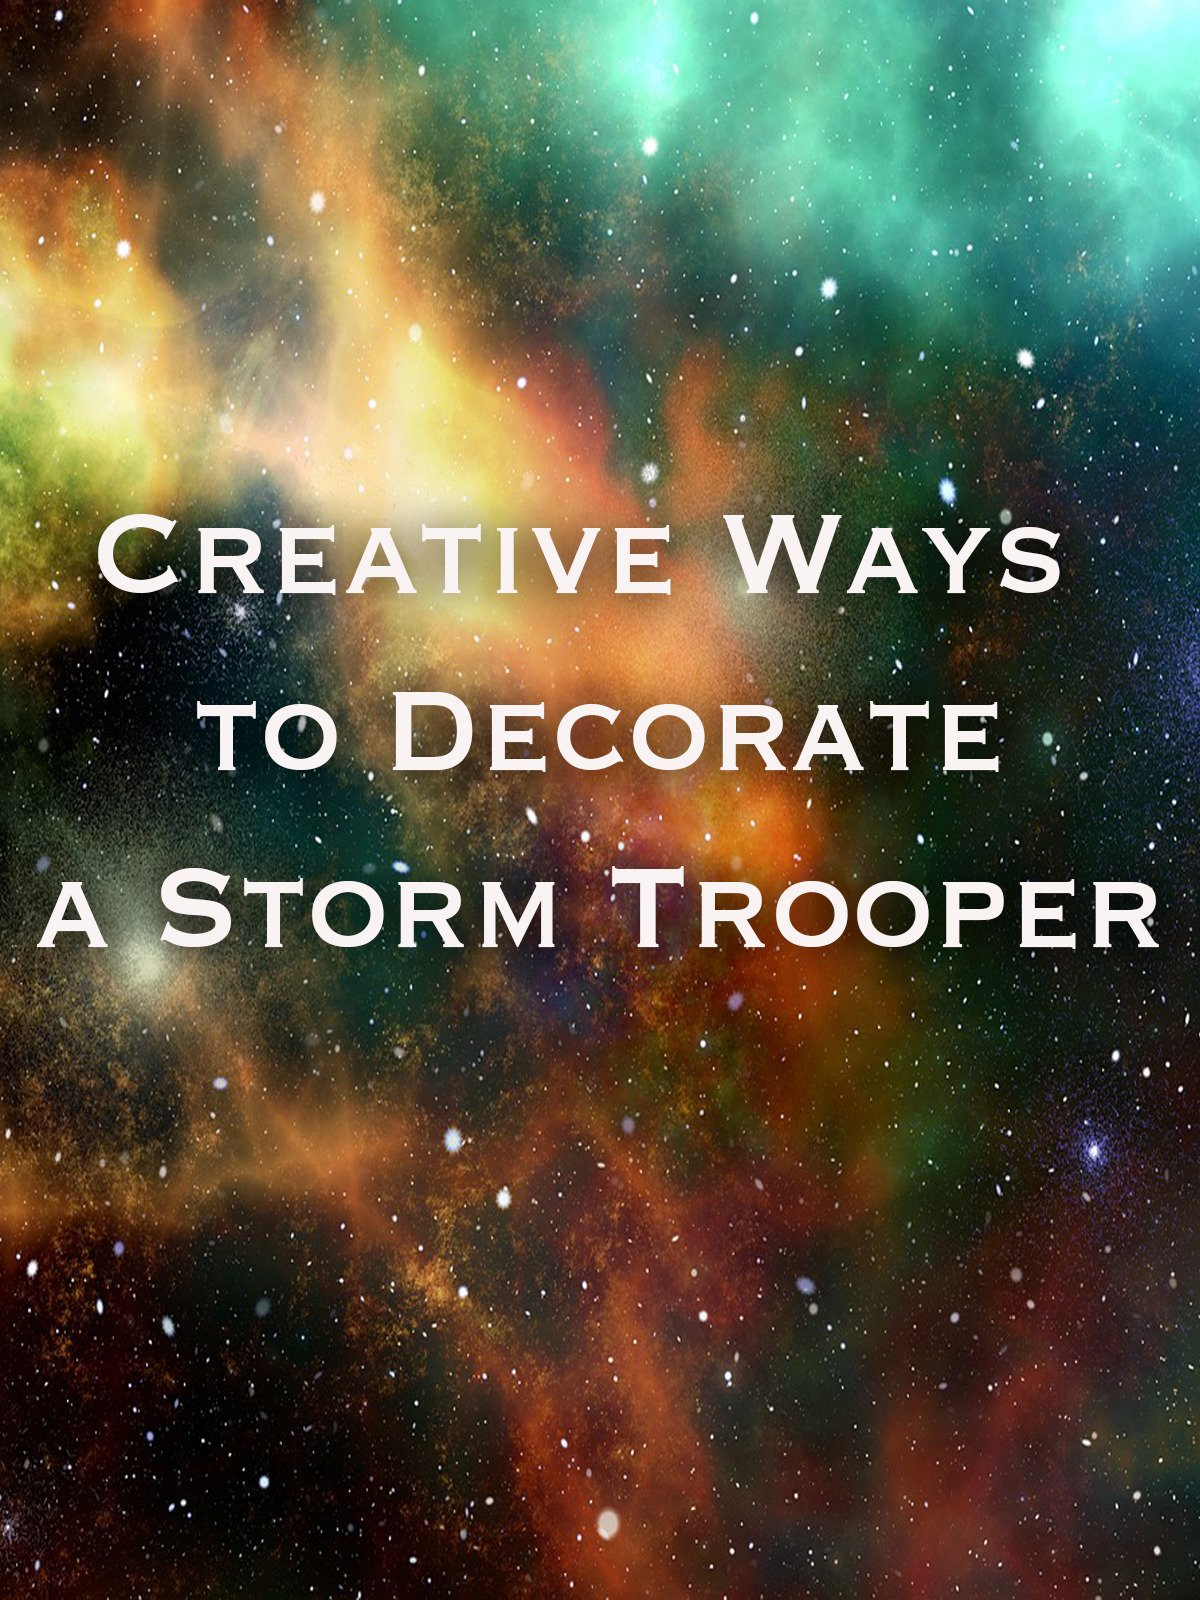 Creative Ways to Decorate a Storm Trooper